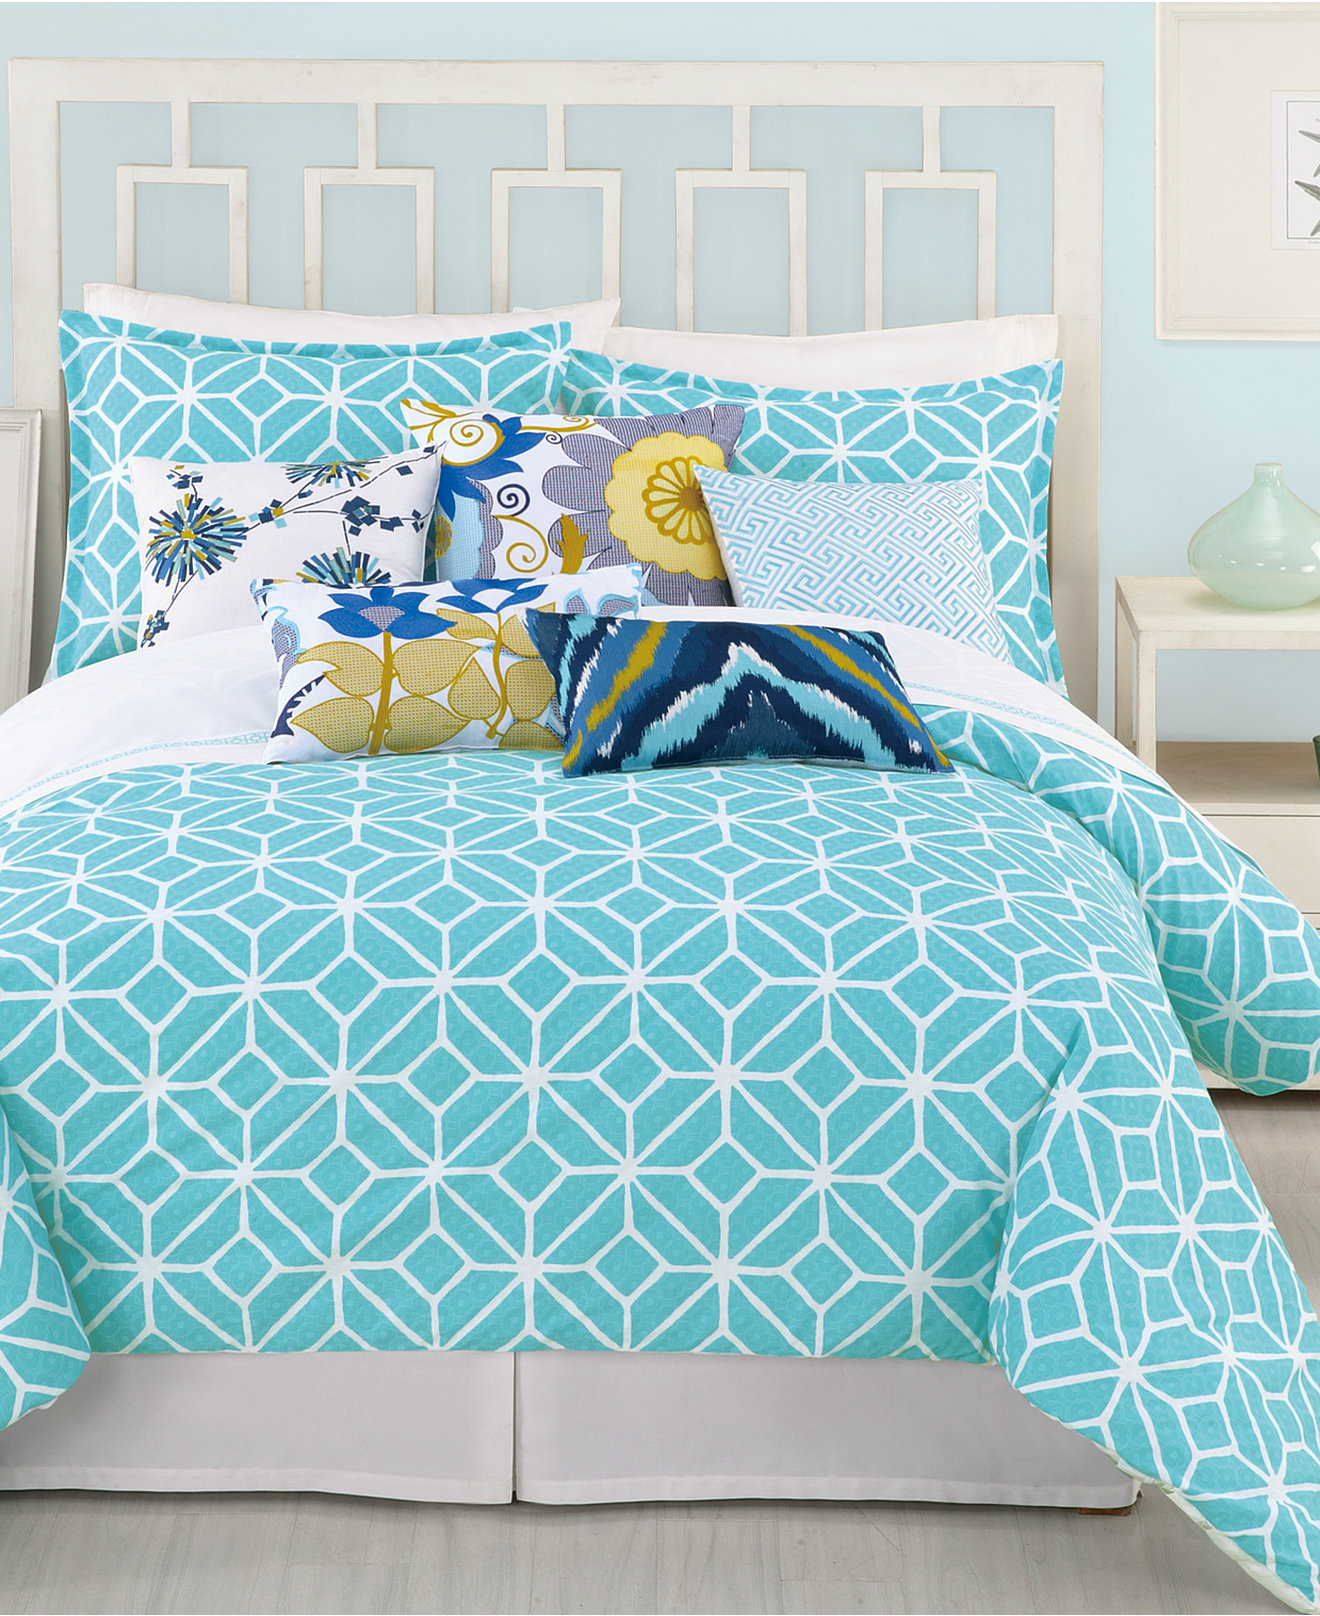 Bed sheet set with quilt - Trina Turk Trellis Turquoise Comforter And Duvet Cover Sets Bedding Collections Bed Bath Macy S